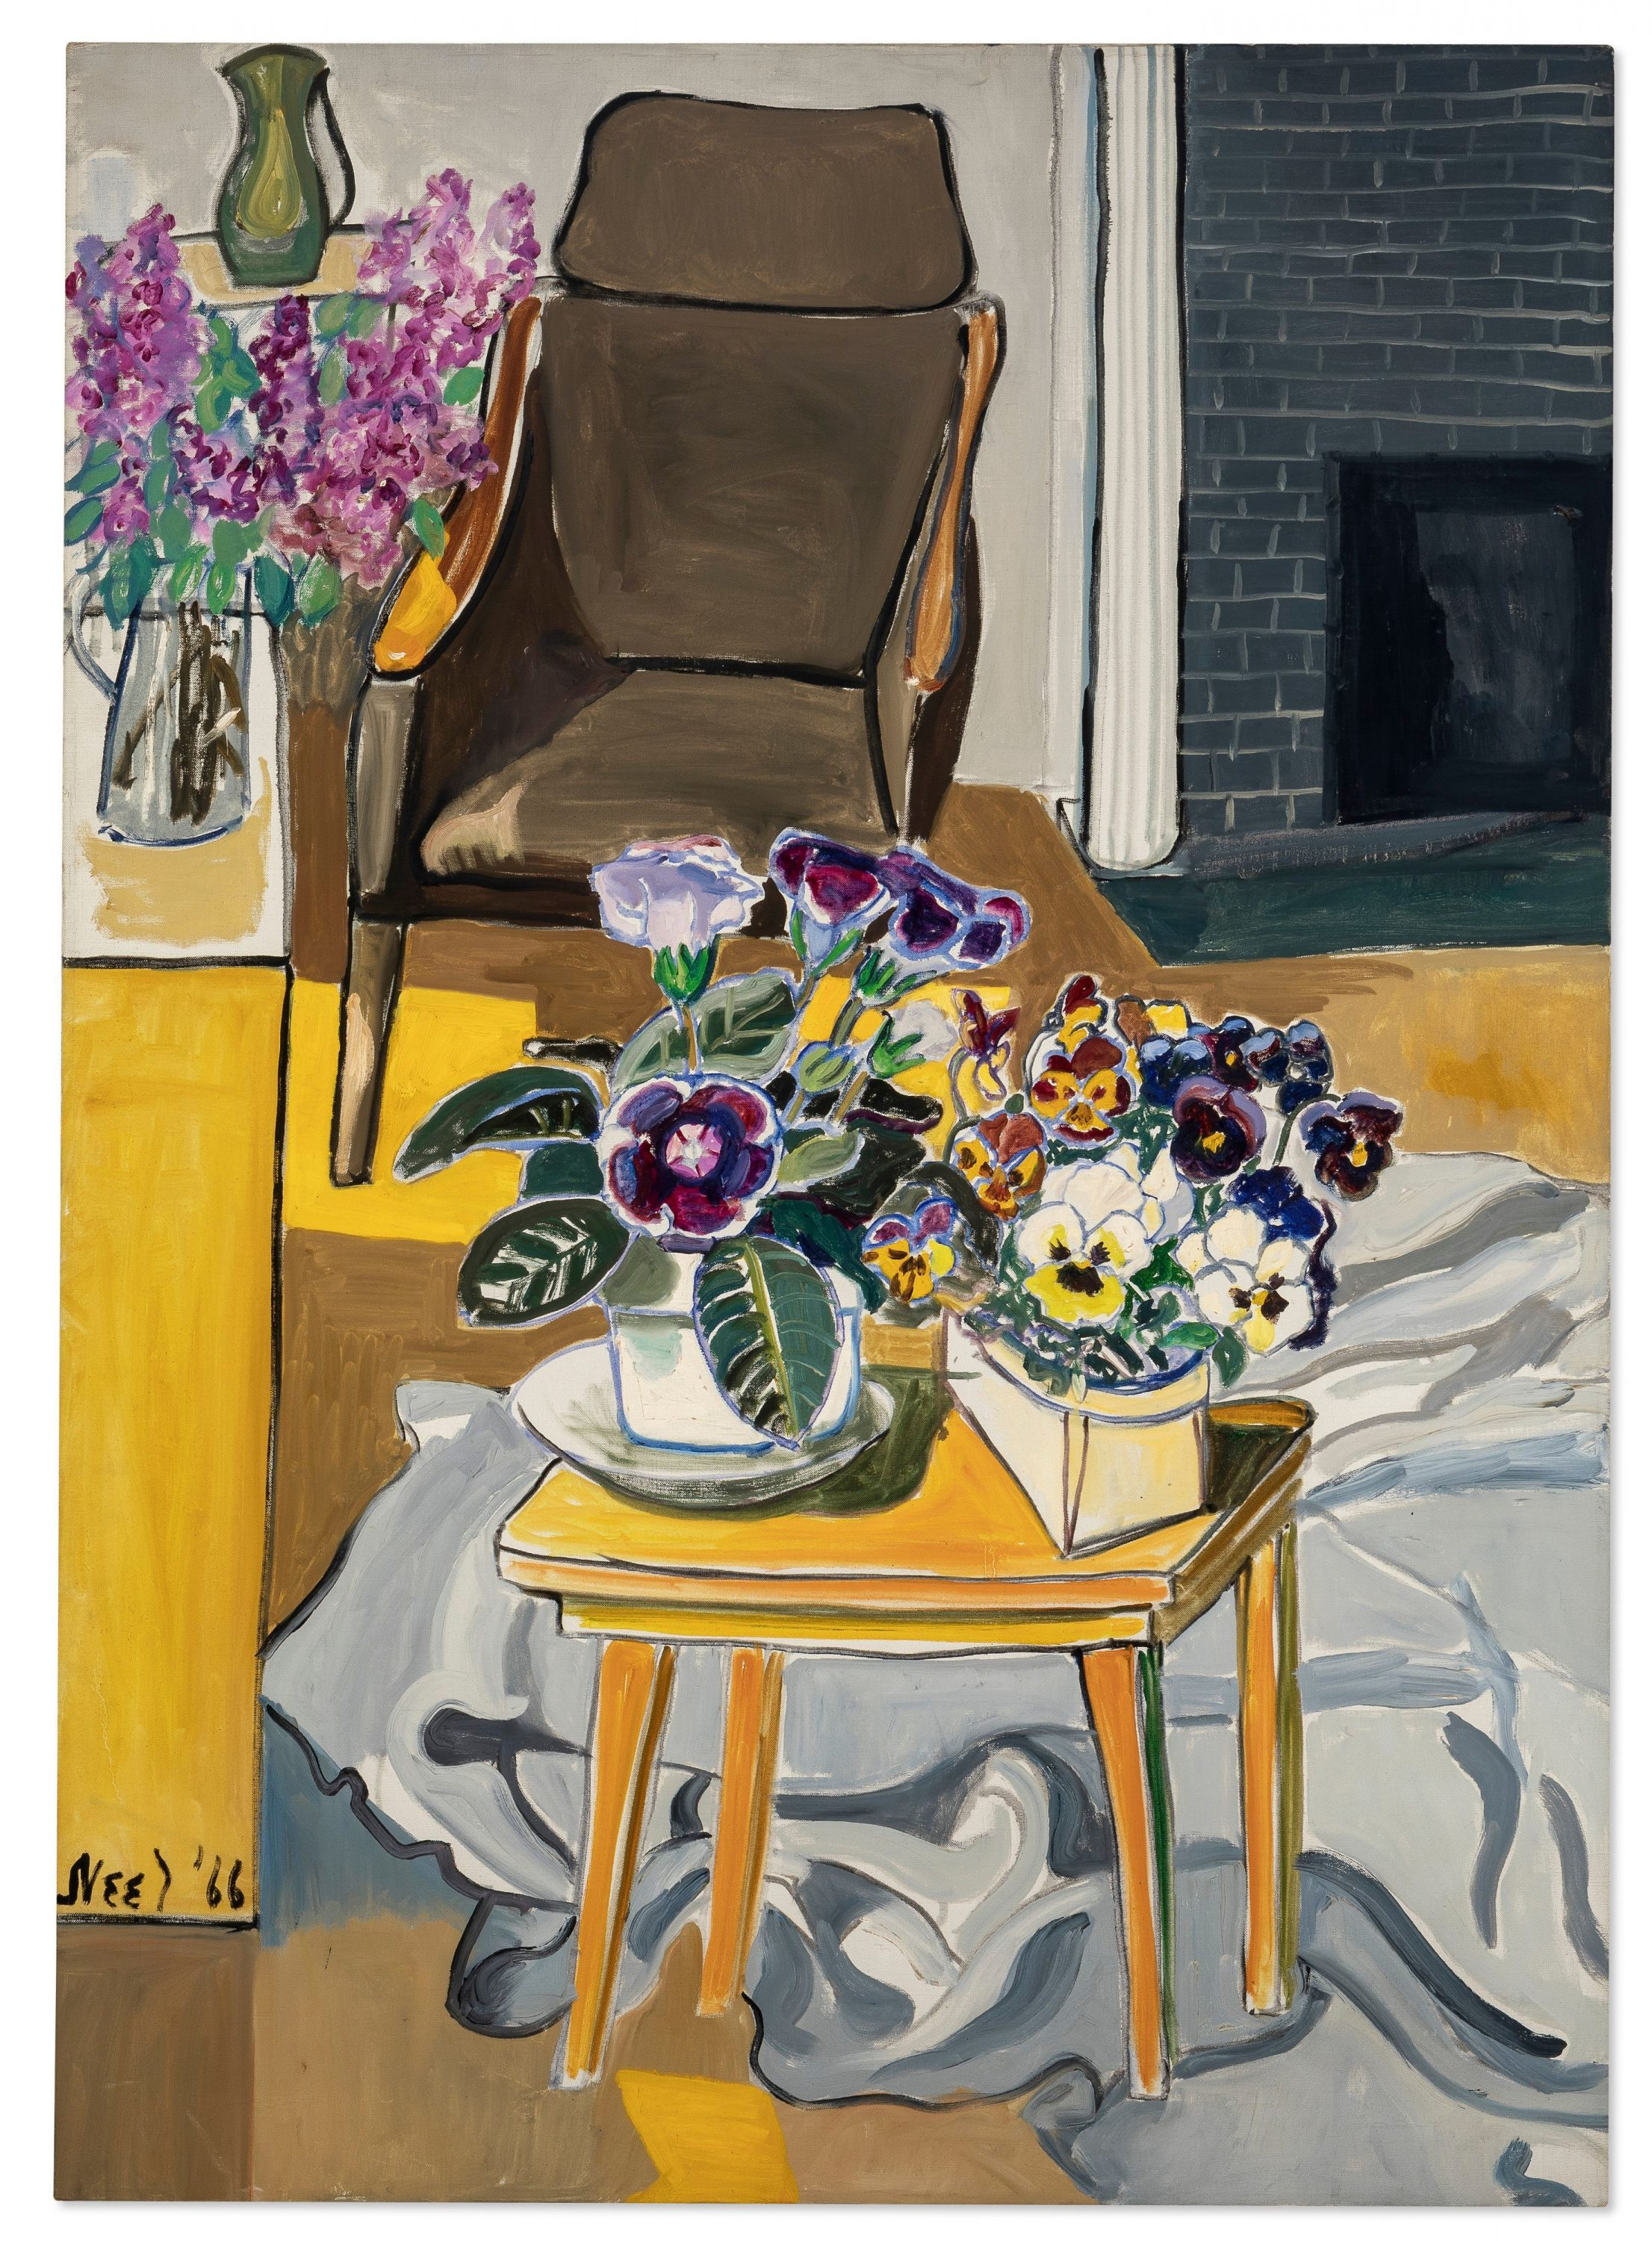 A painting of a doctor's office waiting room, featuring an empty chair next to a fire place and a table in the center of the room with many brightly colored flowers sitting atop it in pots.